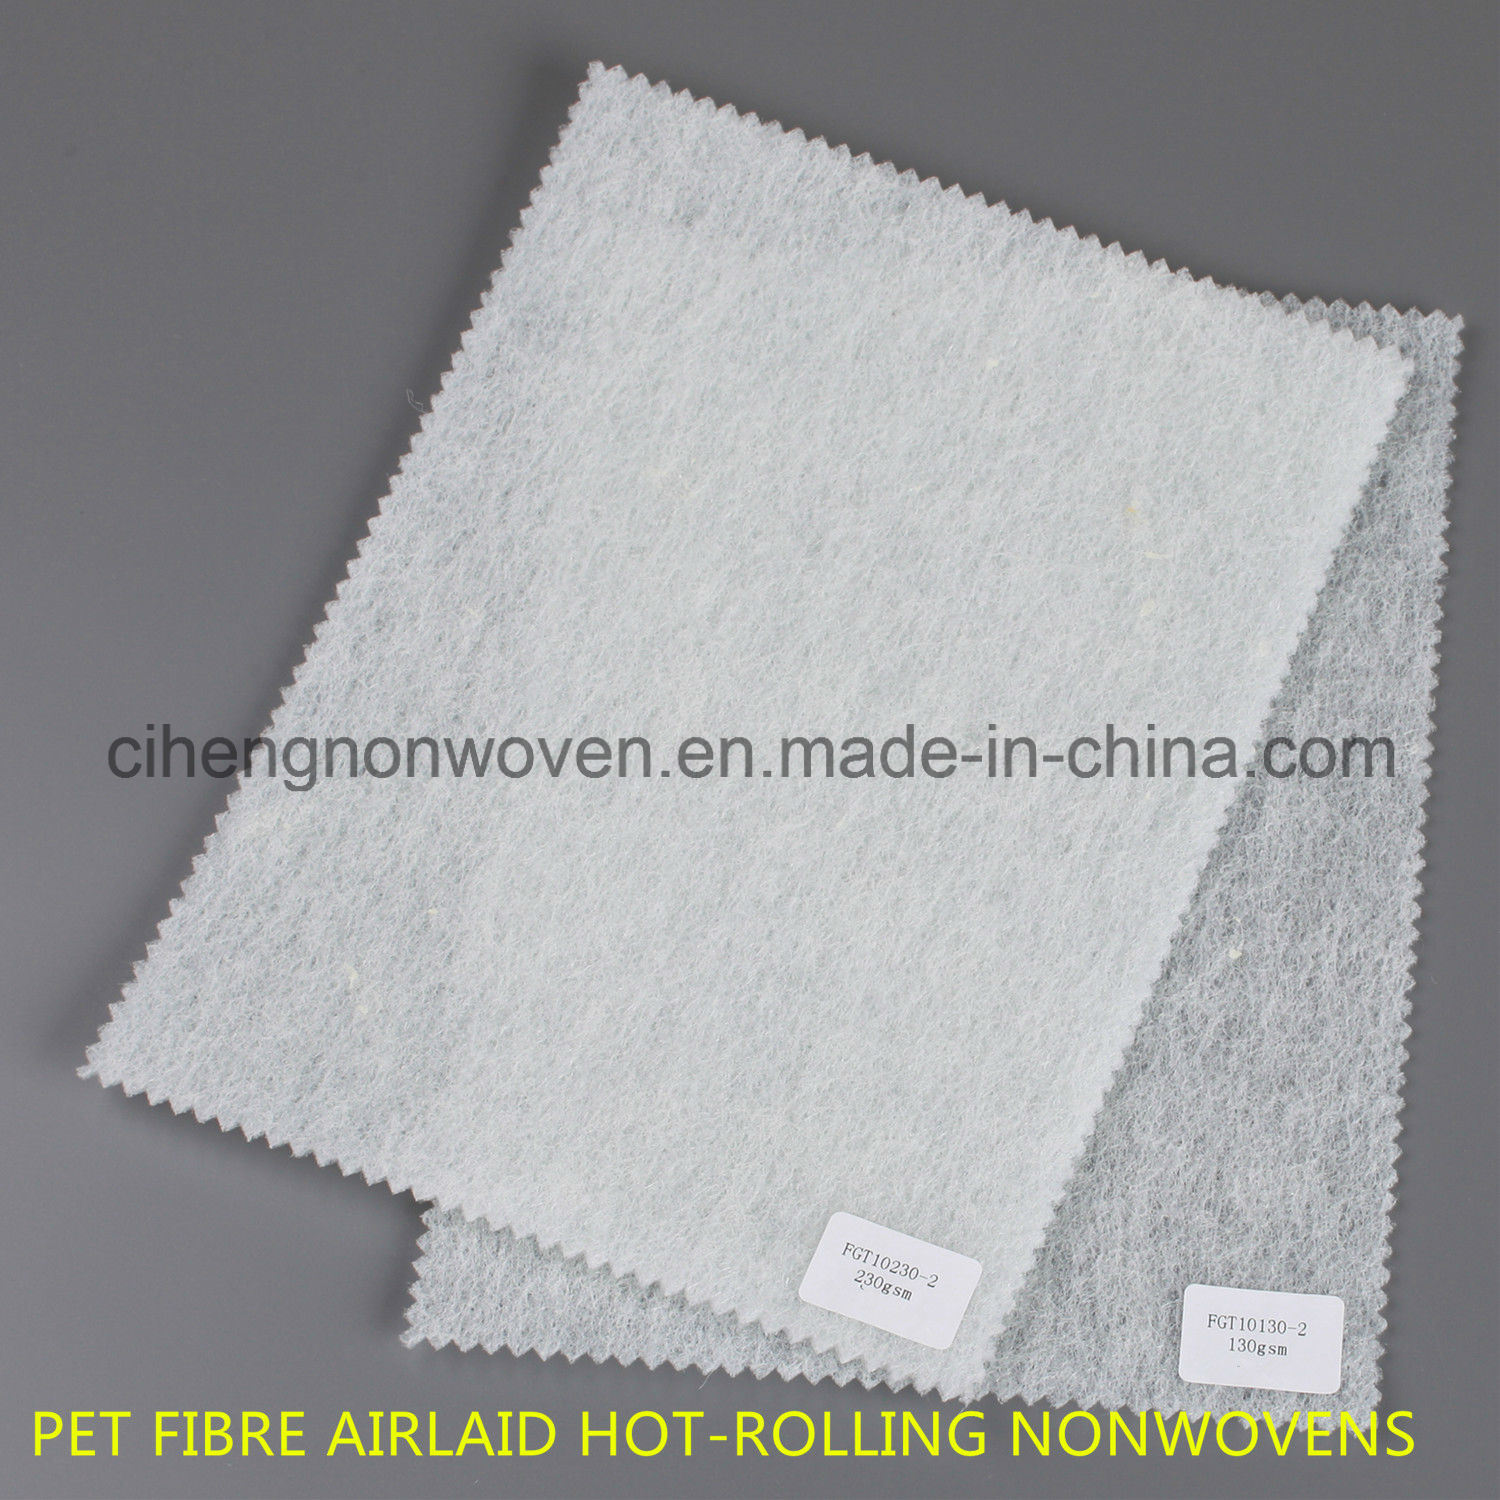 Pet Fibre Airlaid Hotrolling Nonwovens